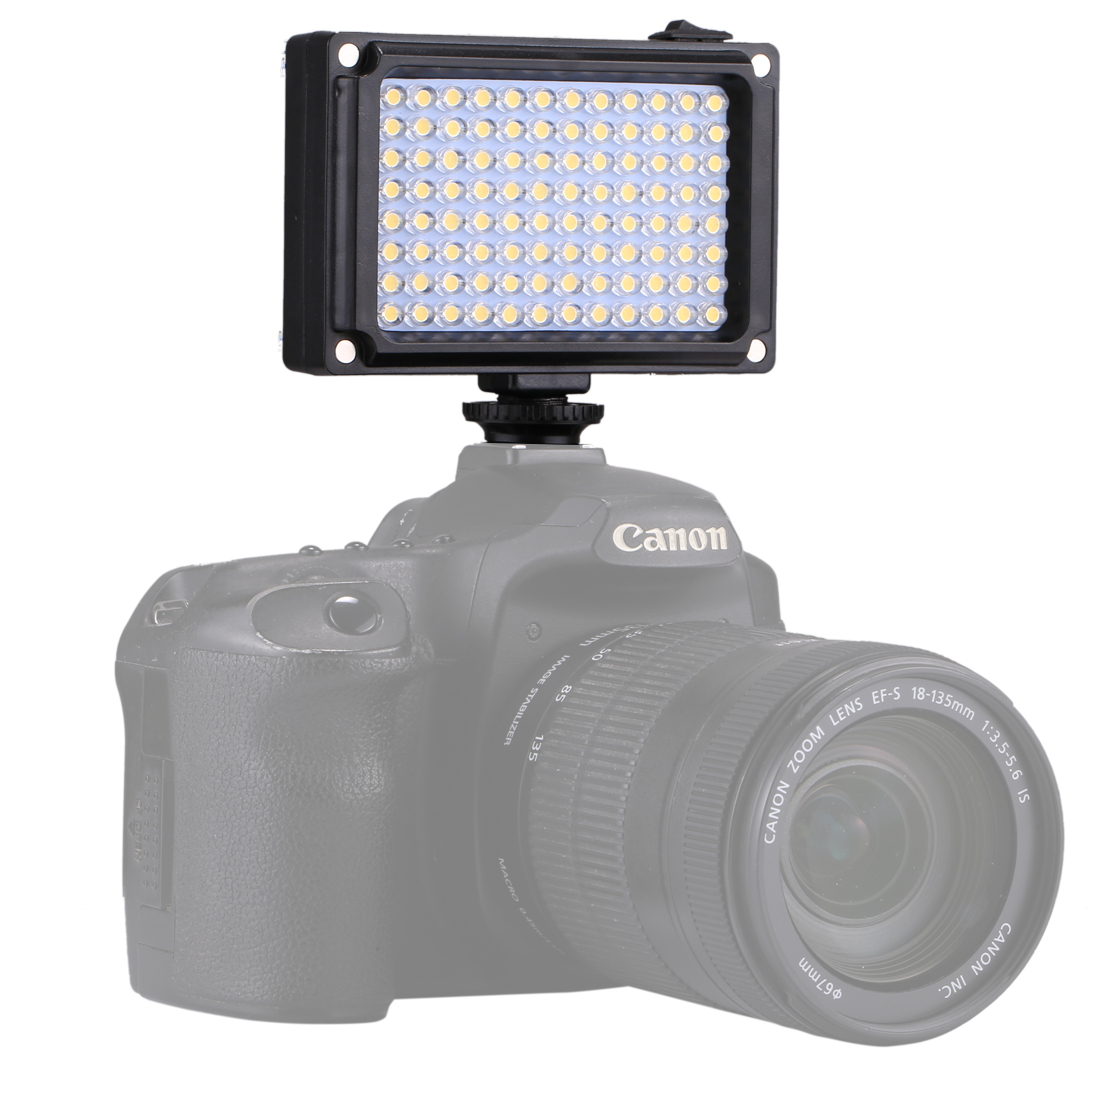 PULUZ PU4096 Pocket 96 LEDs 860LM Pro Photography Video Light Studio Light for DSLR Cameras